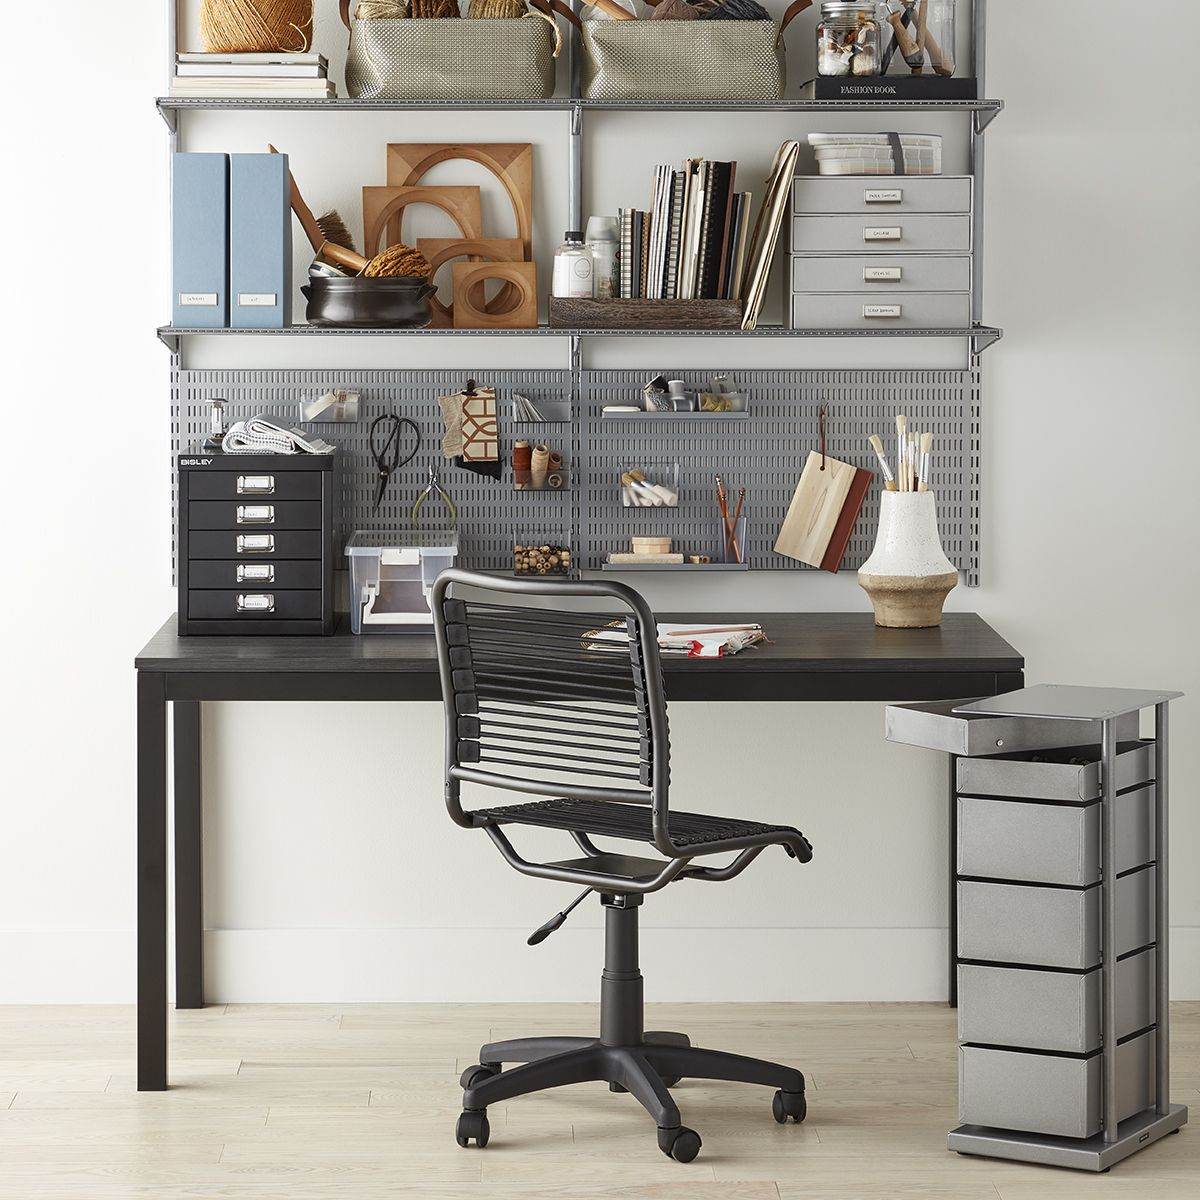 Uniquely Styled For Comfort, Our Flat Bungee Office Chairs